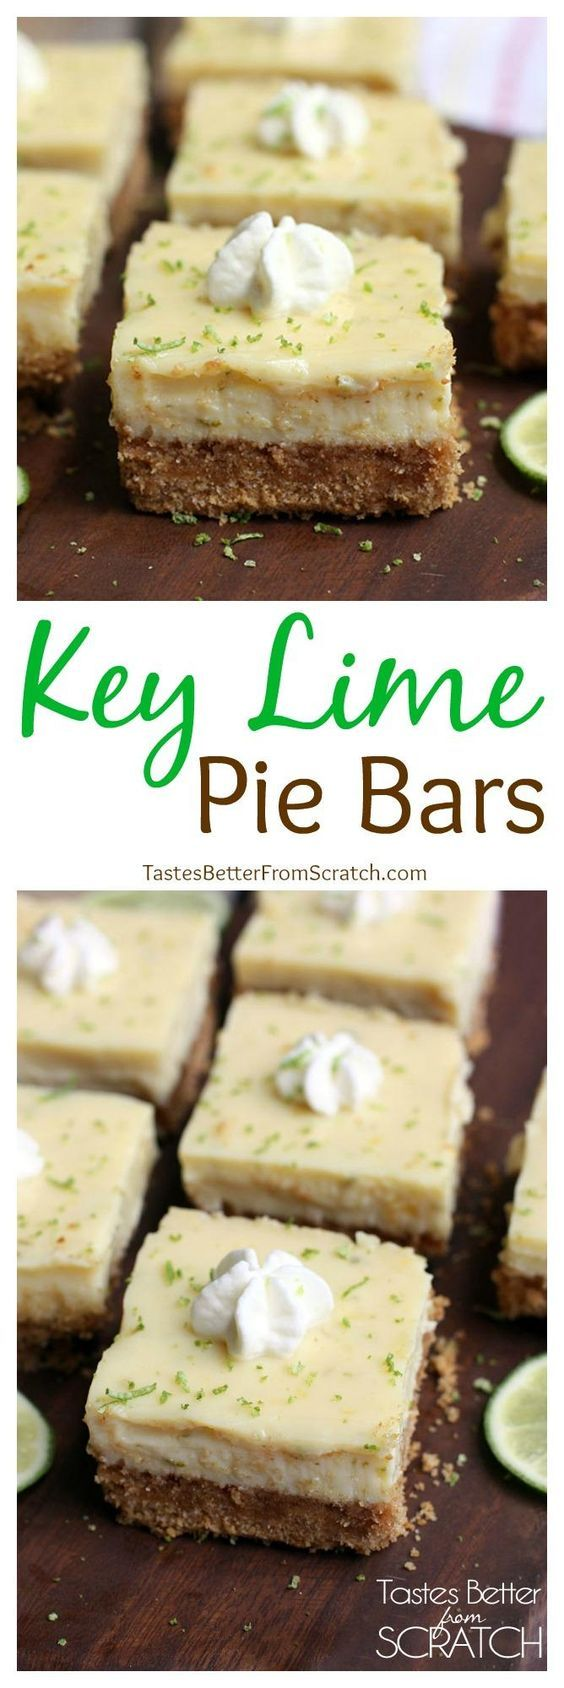 Key Lime Pie Bars | Recipe